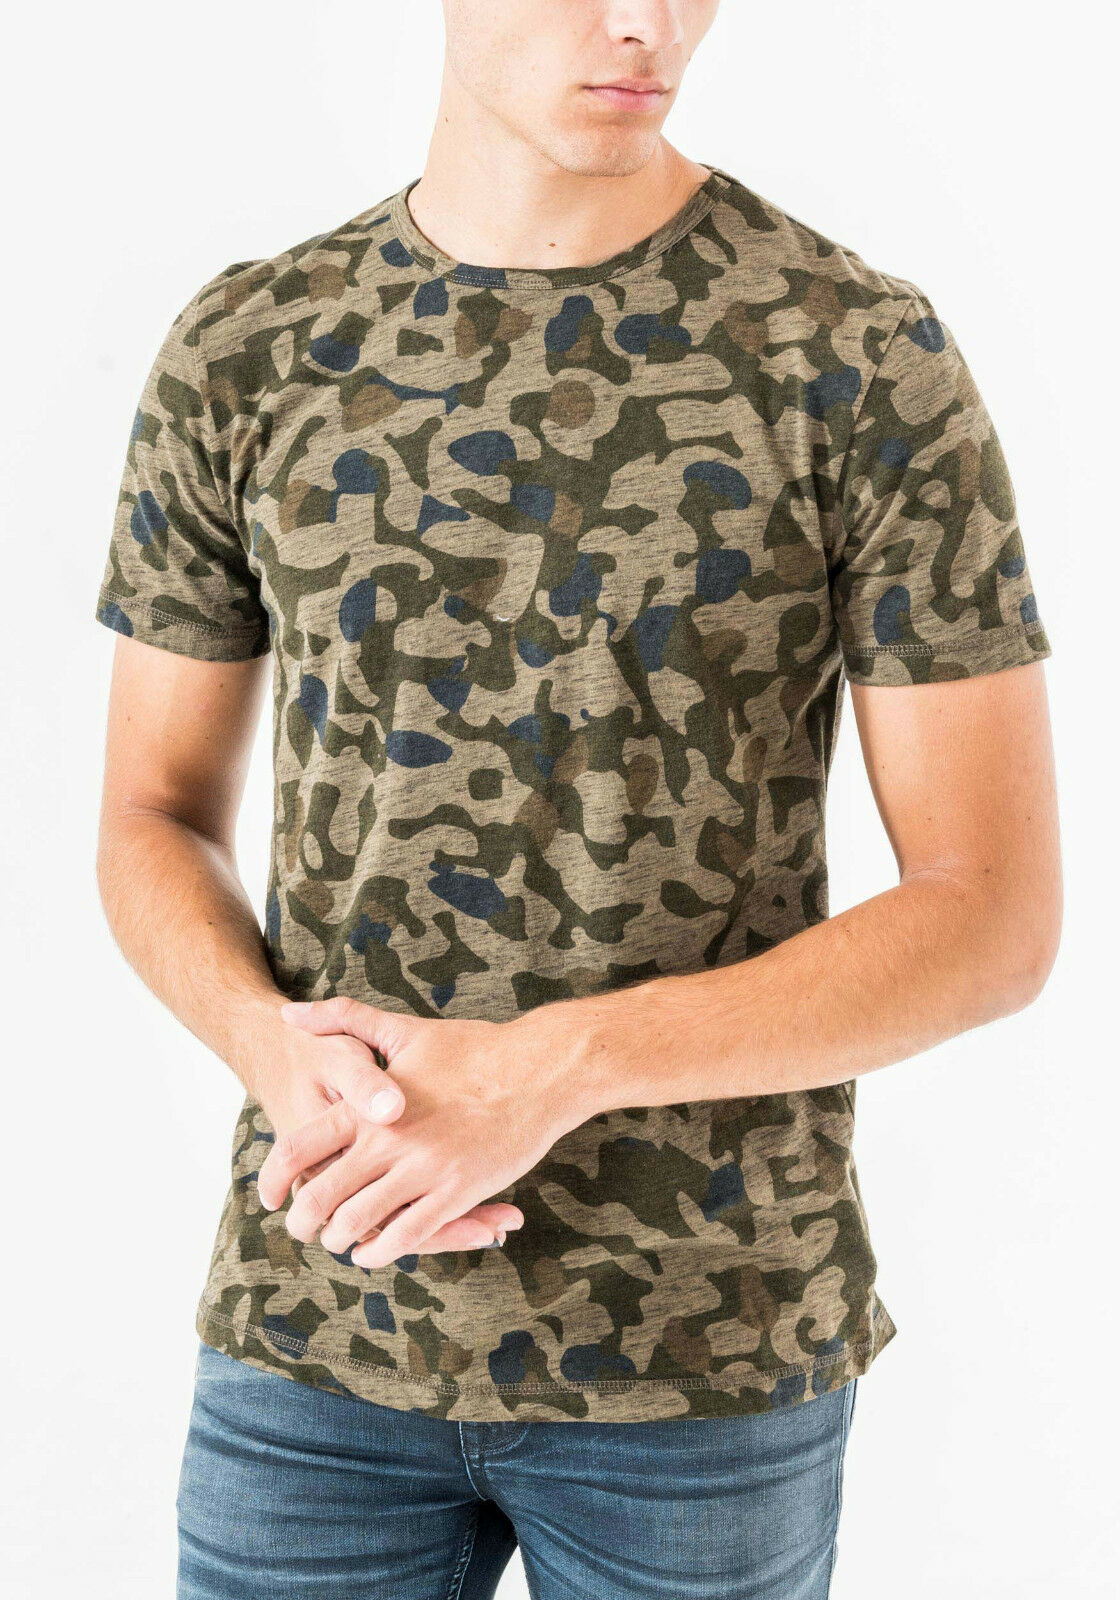 Antony Morato Previeh Hw2018 T-Shirt Camouflage Pattern Fine Cotton New SIZE M